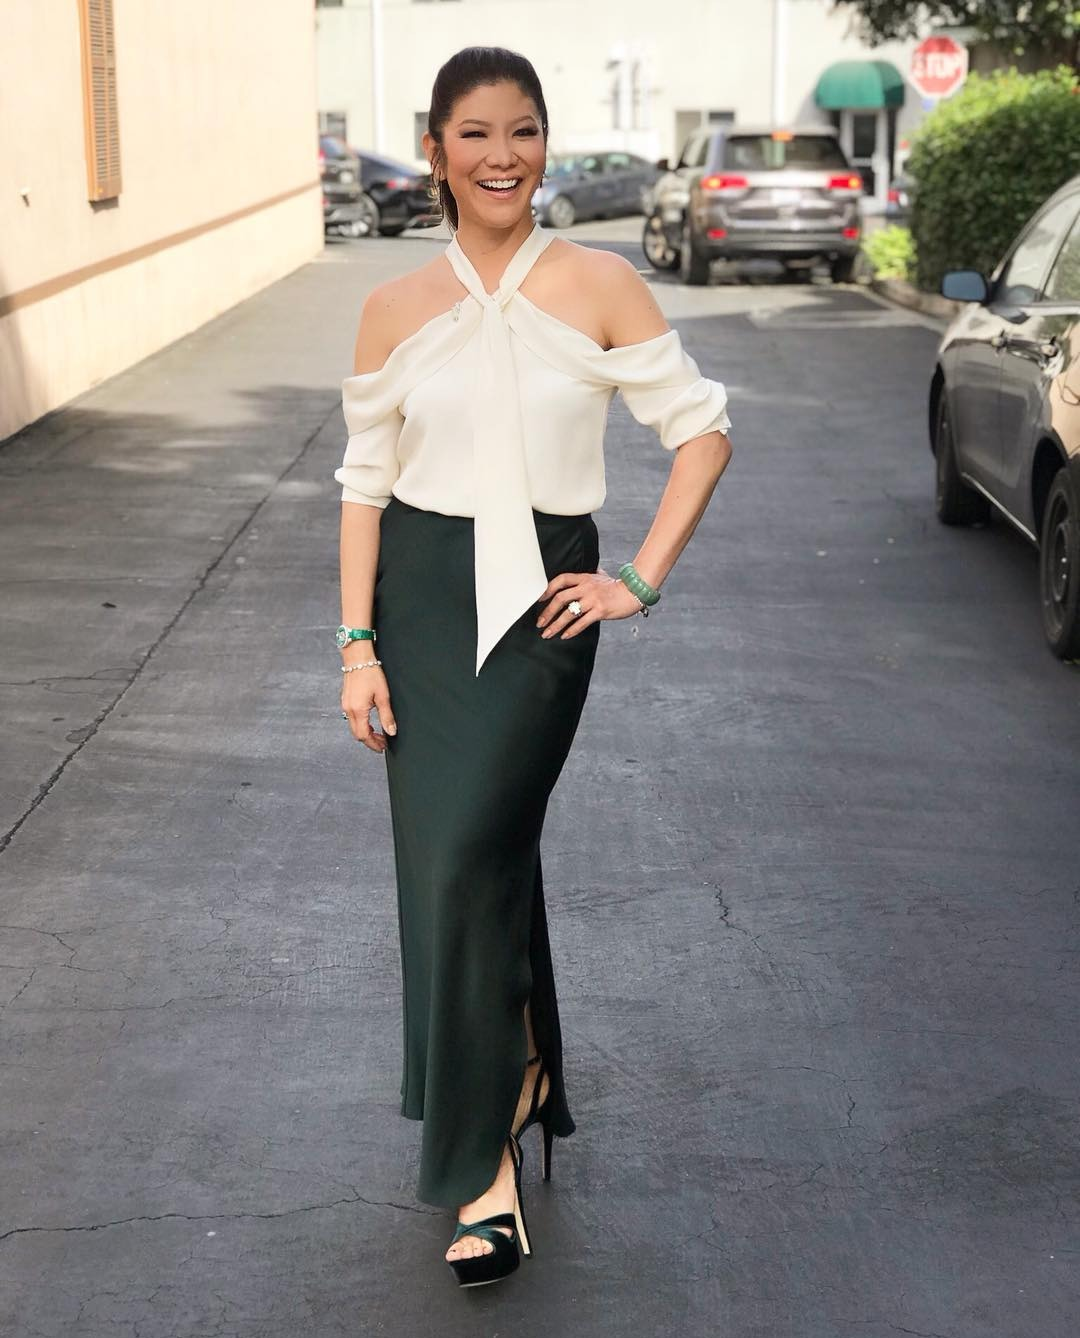 Julie Chen is standing tall in her long heels. She is looking beautiful as she smiles. Julie is wearing a white off shoulder t-shirt paired with a long avocado green skirt.